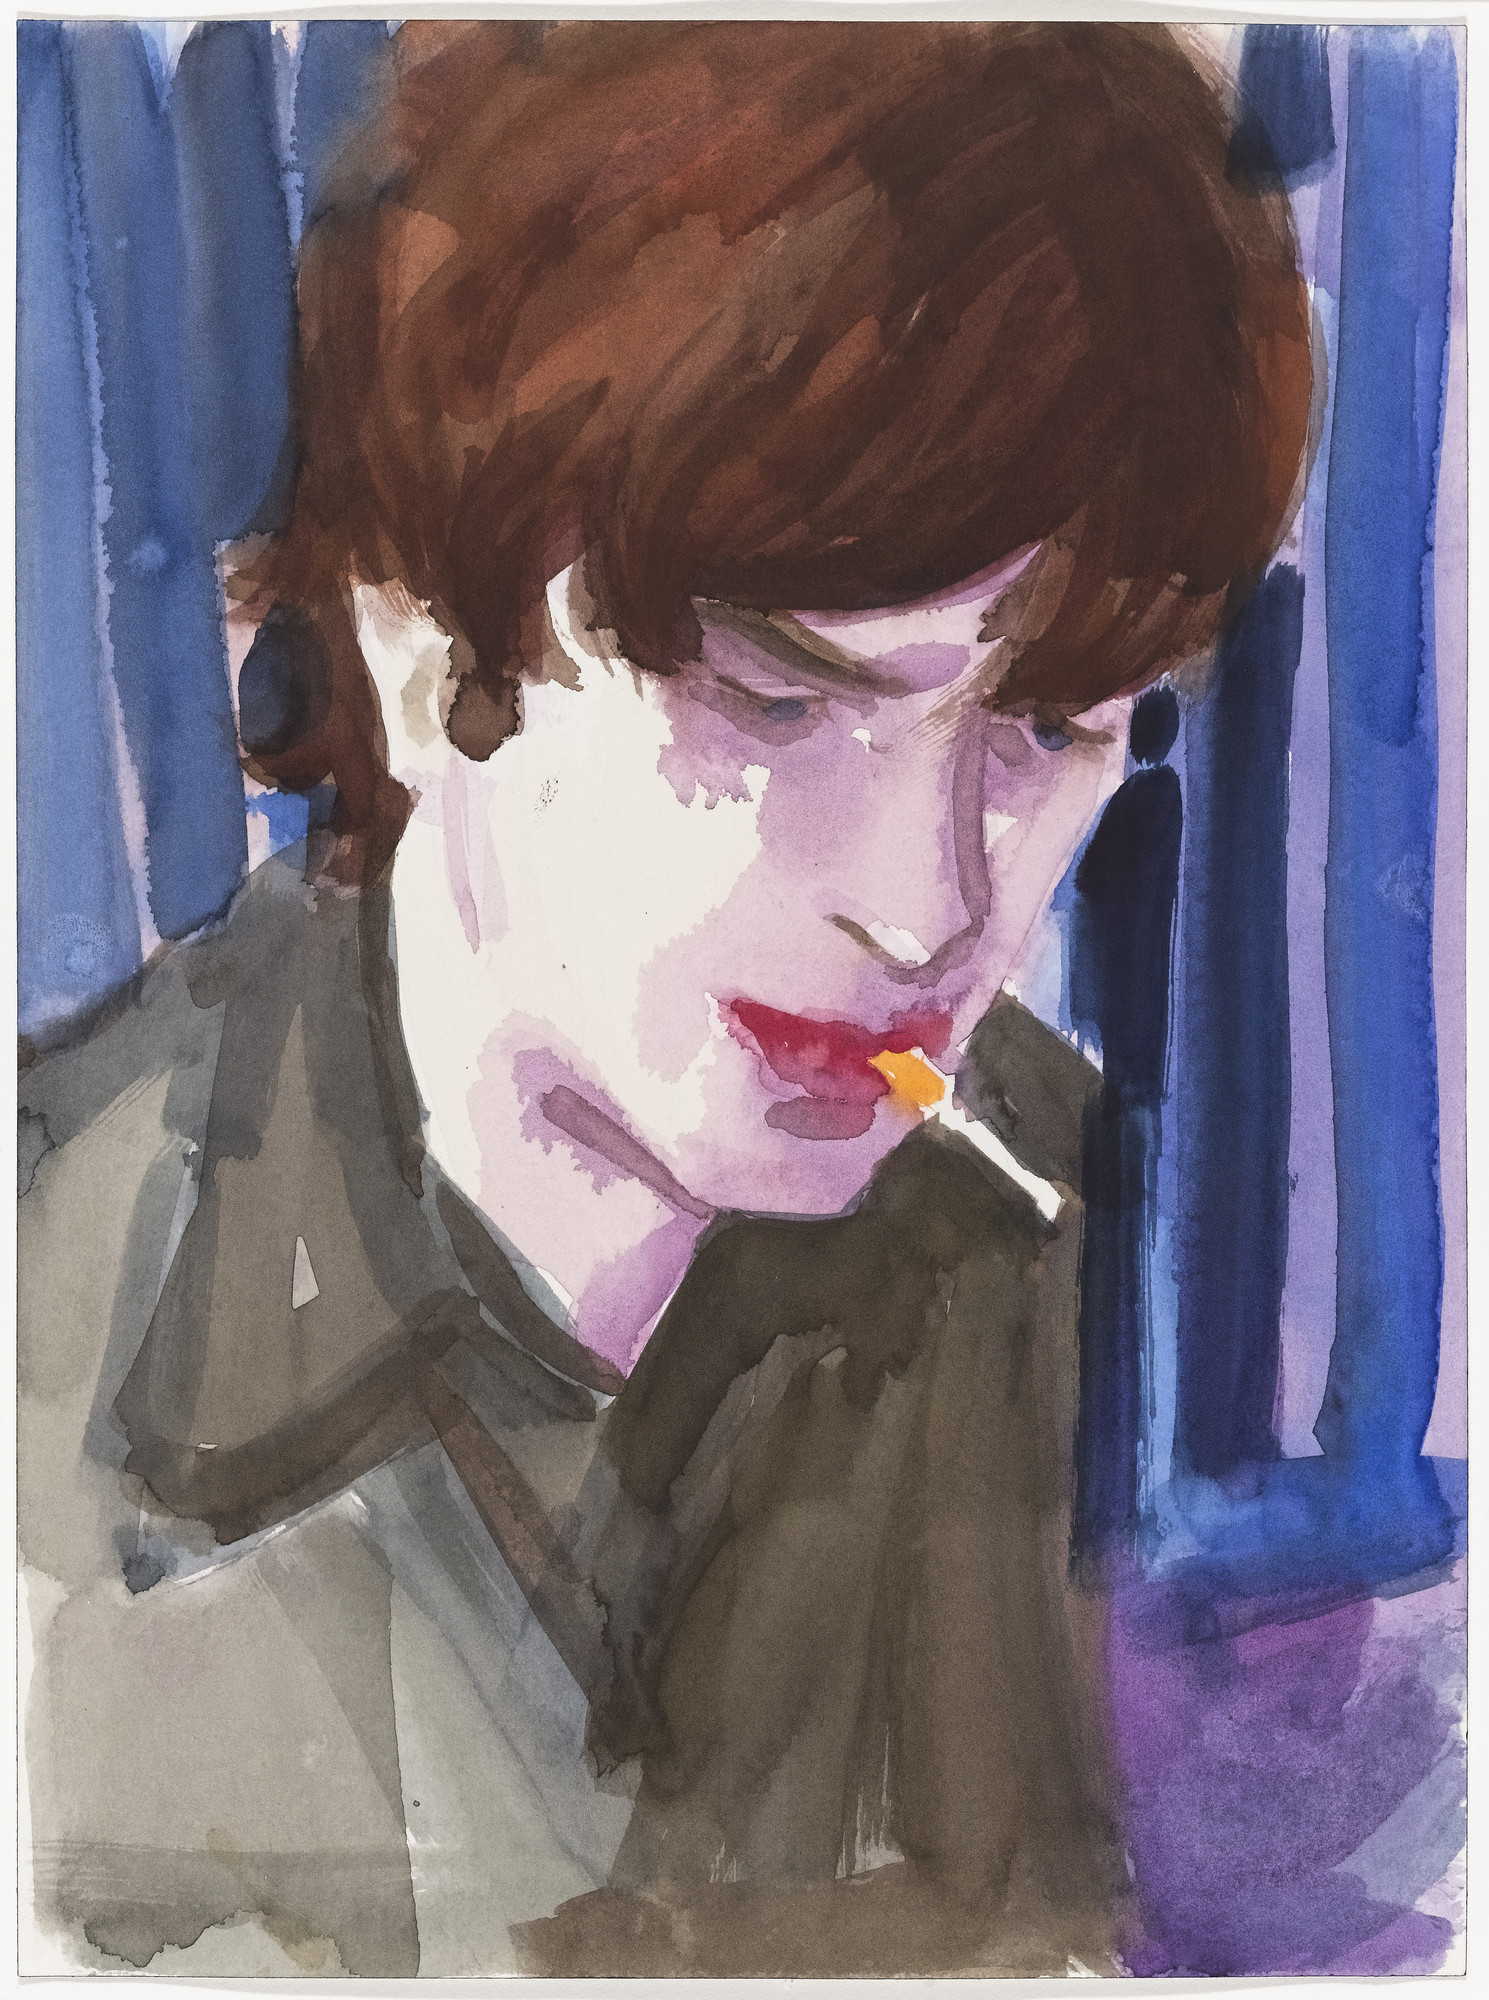 Elizabeth Peyton. Matthew Smoking. (1997)